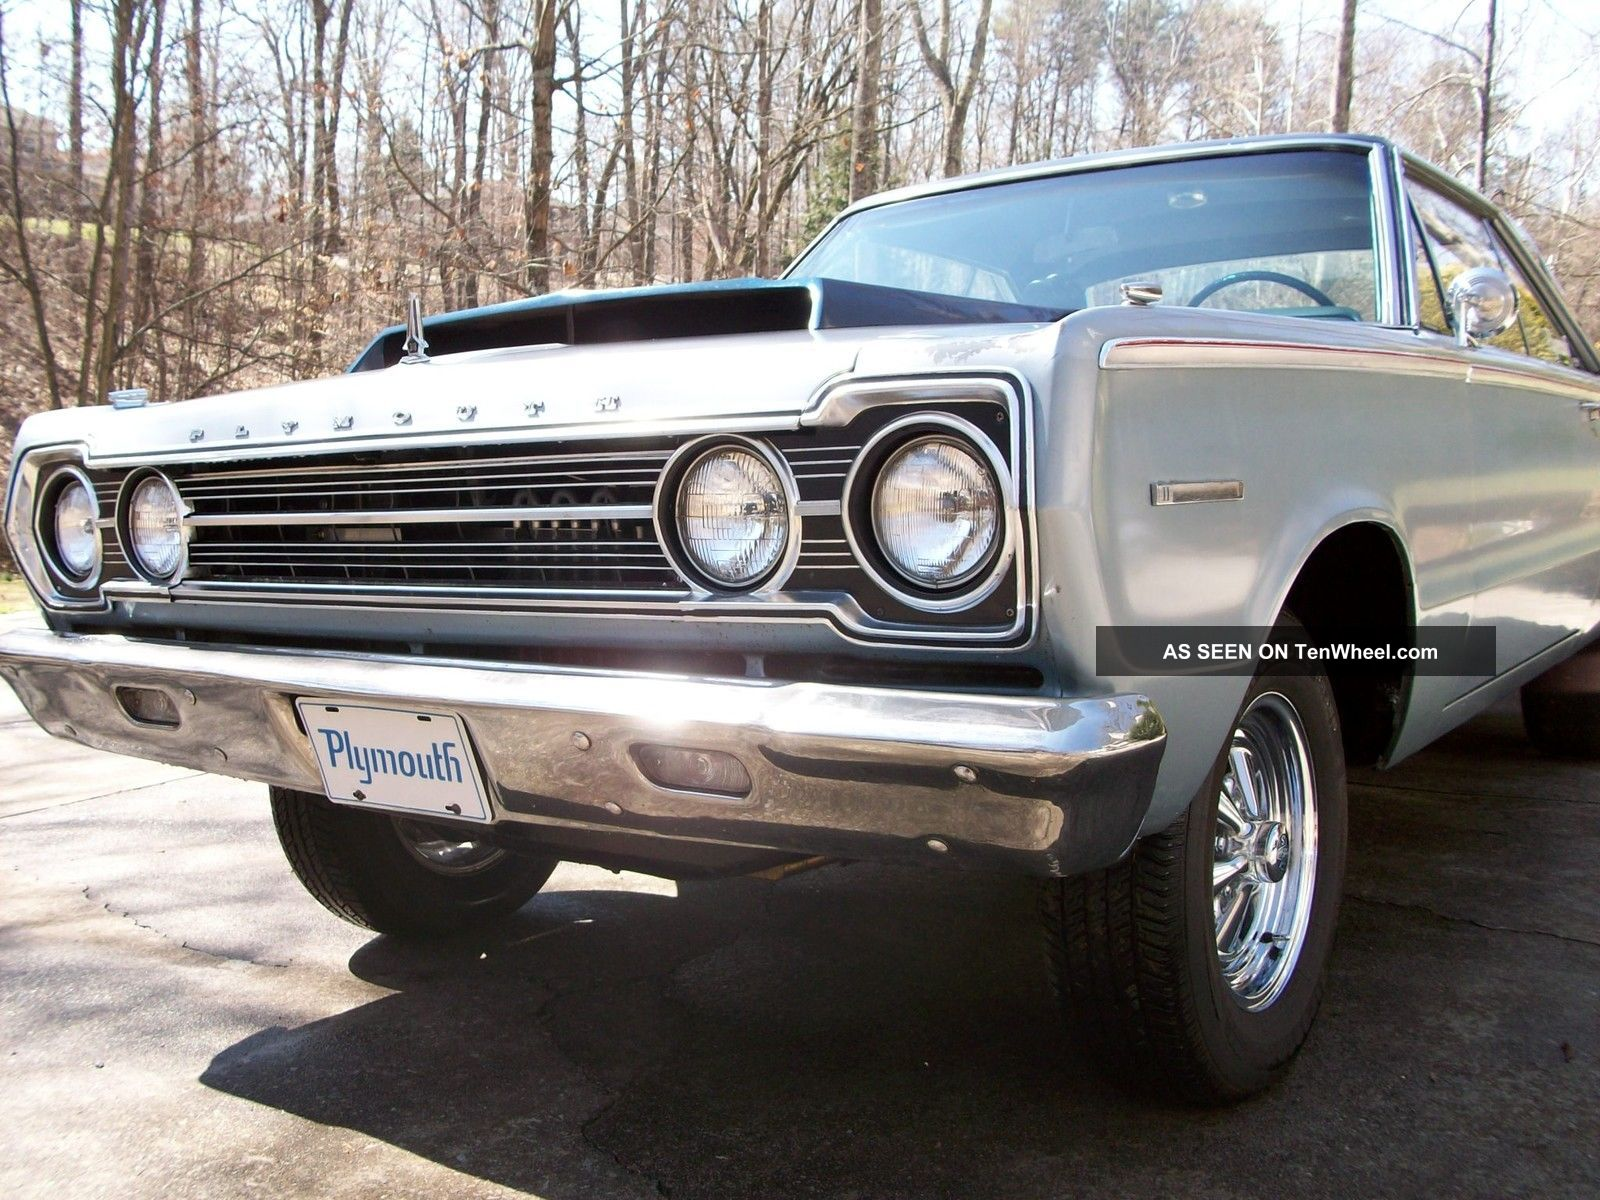 1967 Plymouth Belvedere 11 Collector Car Other photo